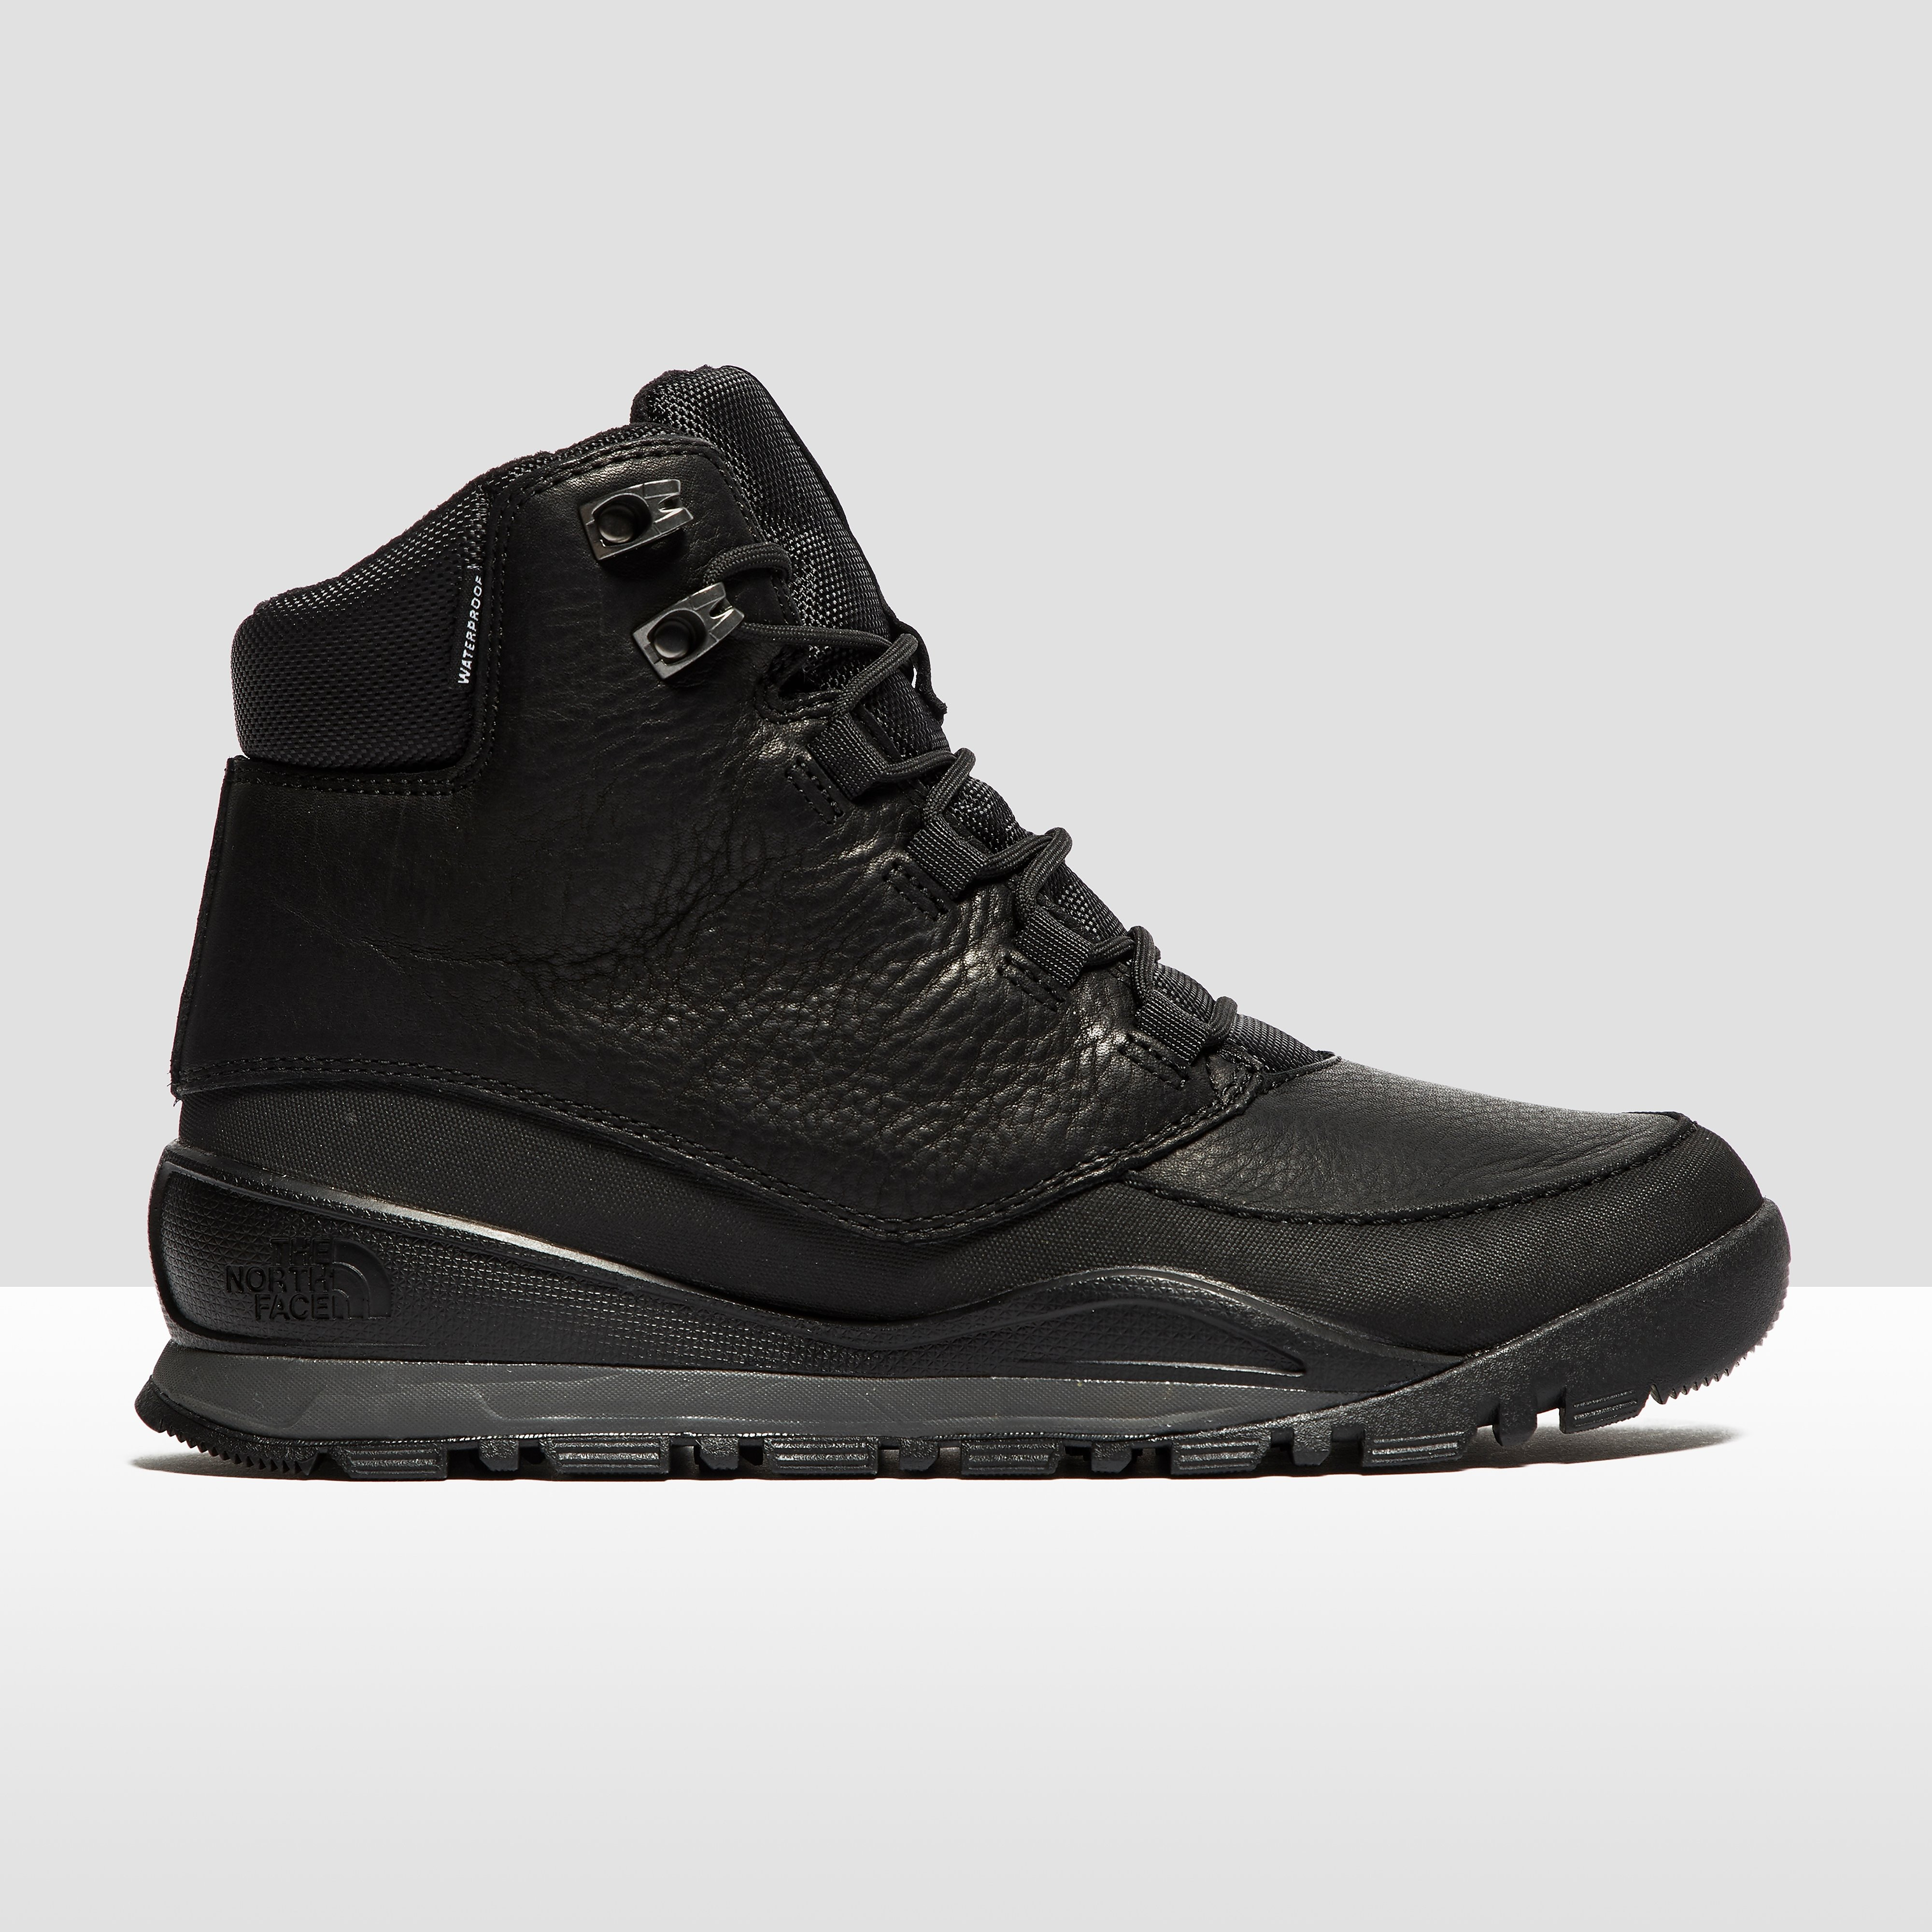 The North Face Edgewood Men's Boots